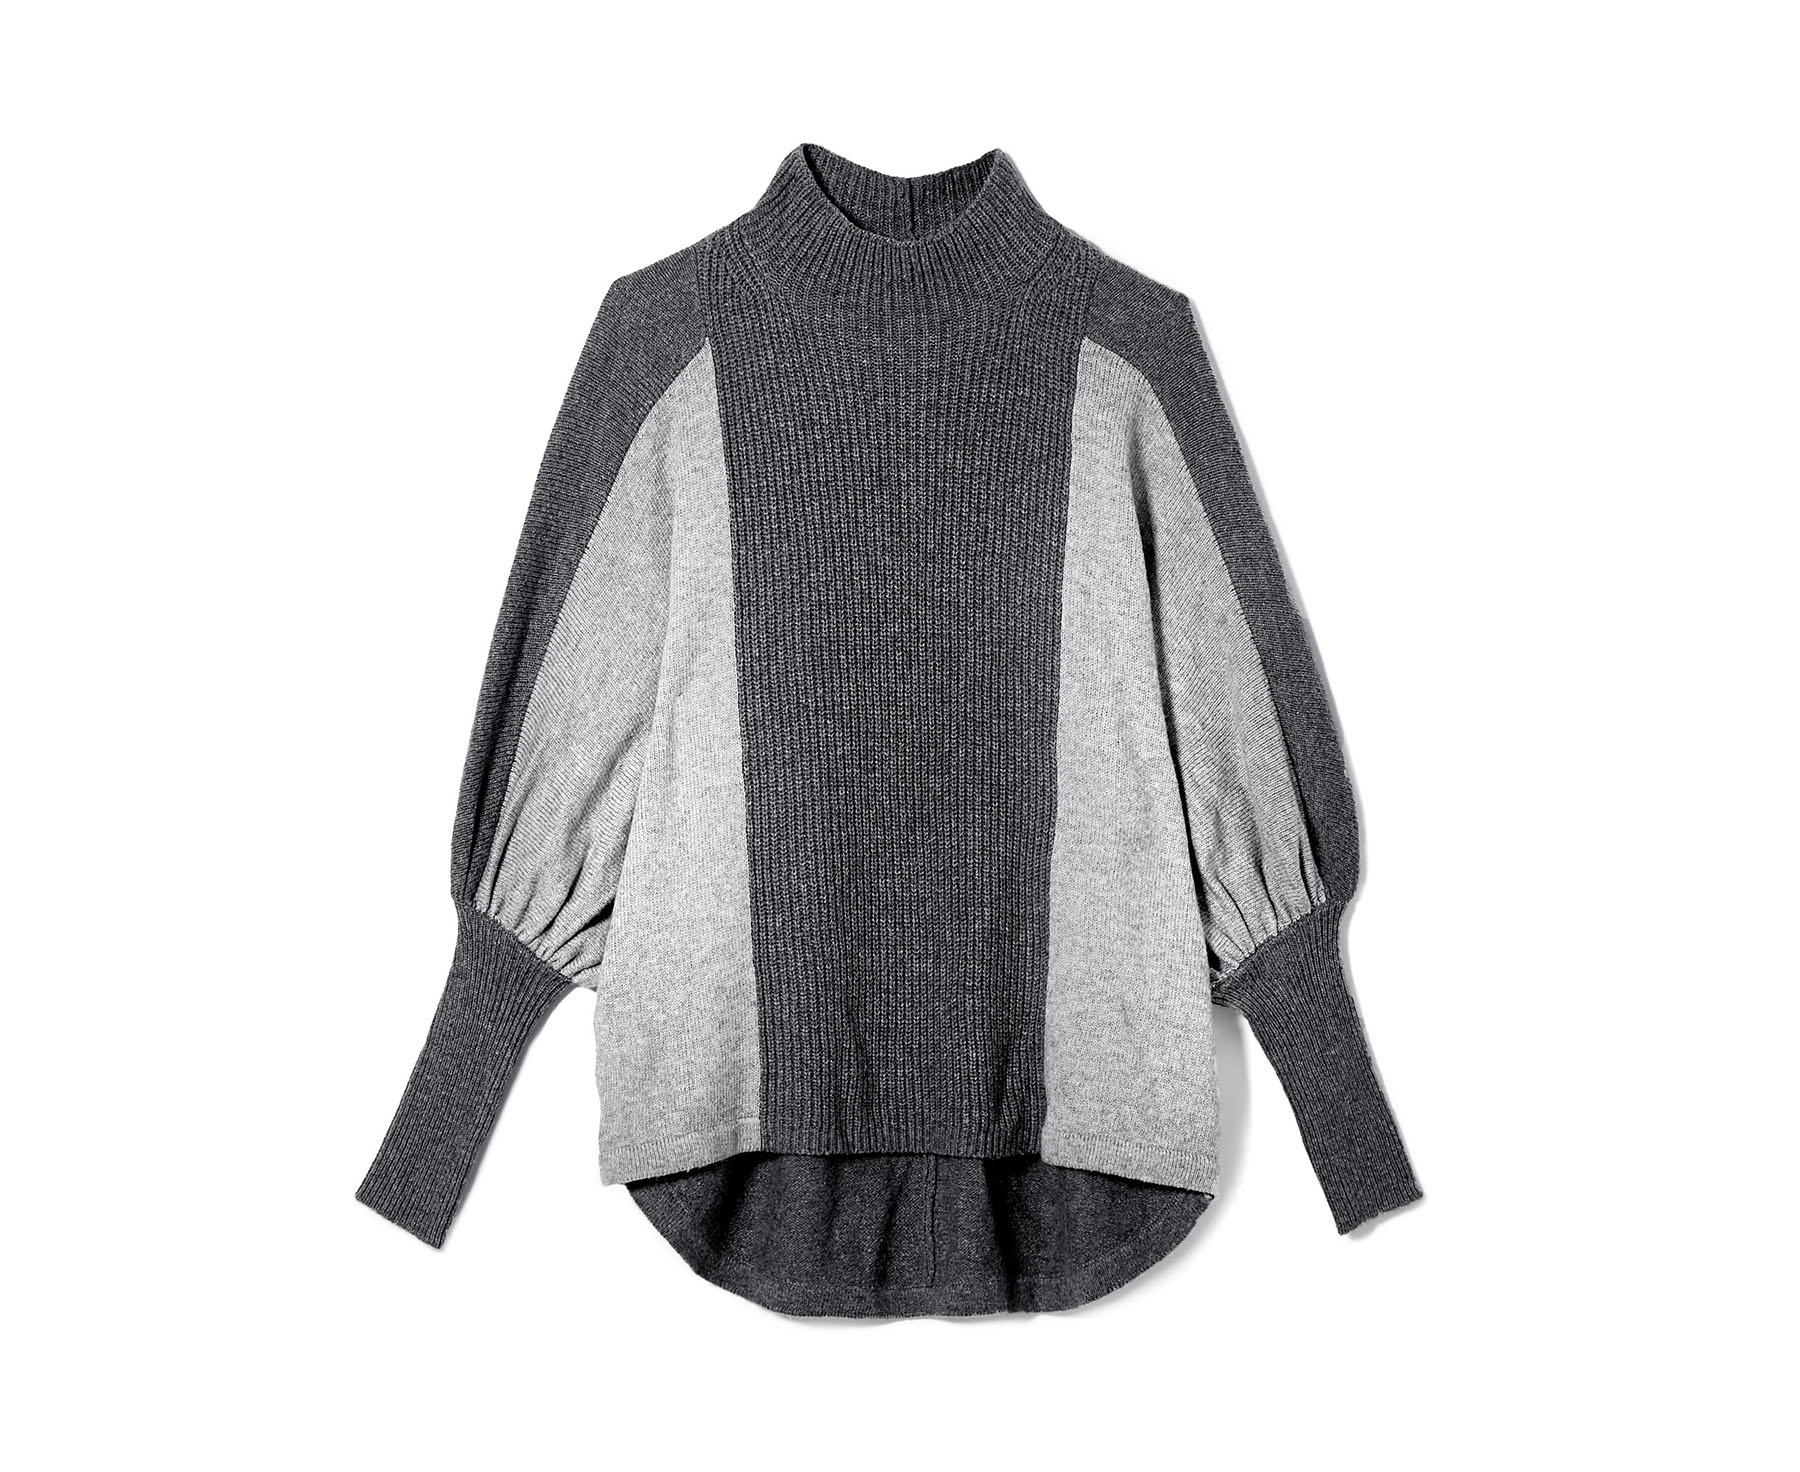 Vince Camuto Exaggerated Sleeve Colorblock Sweater